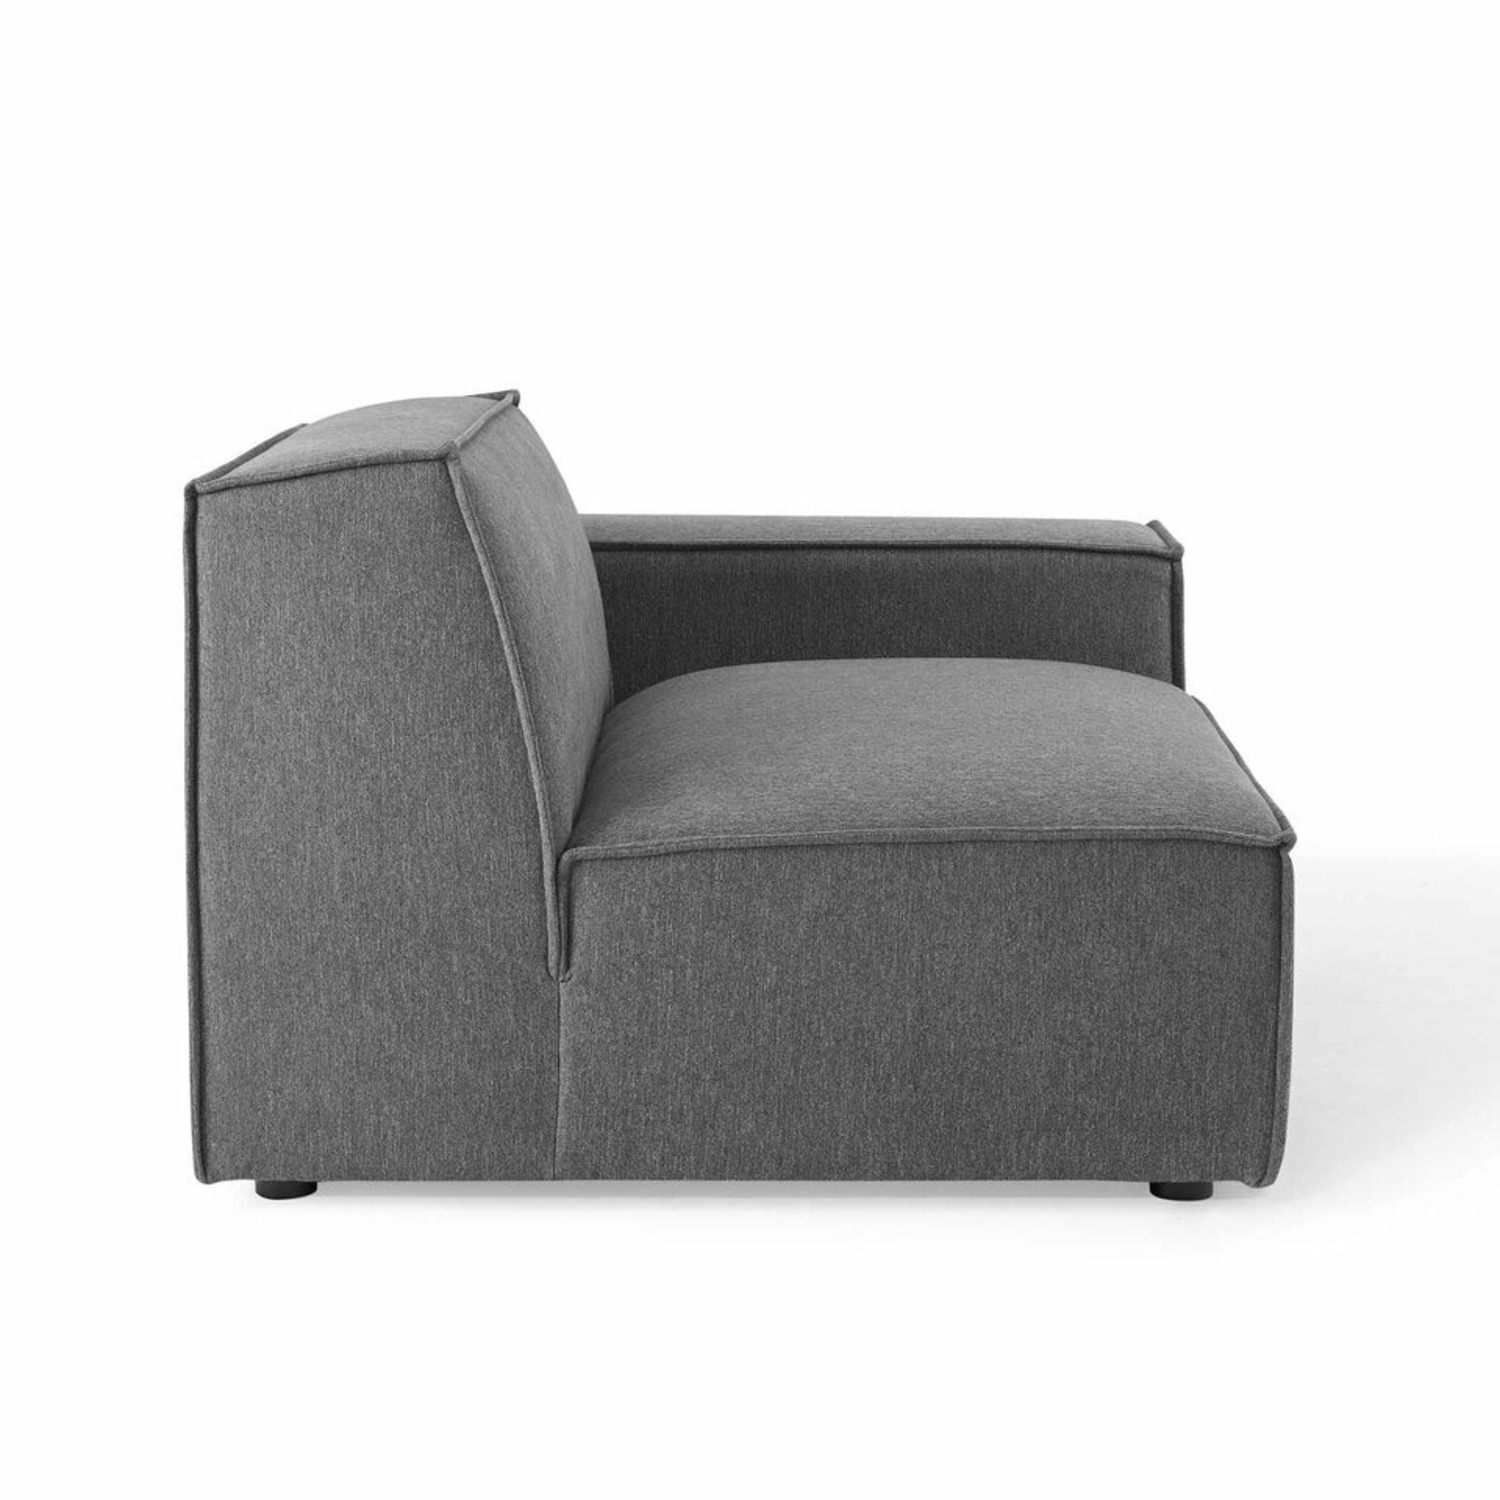 4-Piece Sectional Sofa In Charcoal Upholstery - image-3